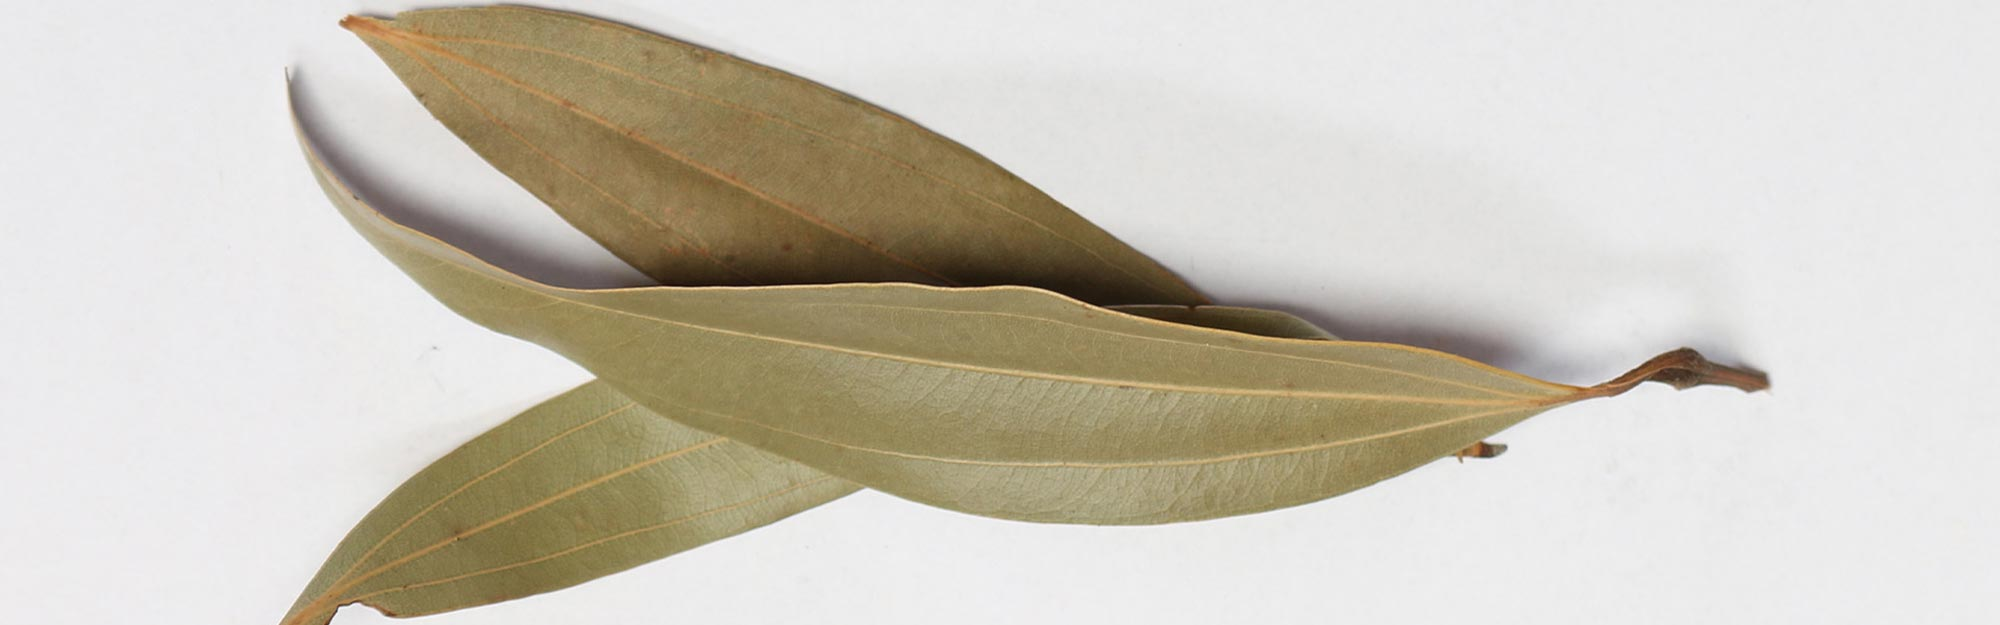 Bay Leaf for Diabetes - Find Out How Good